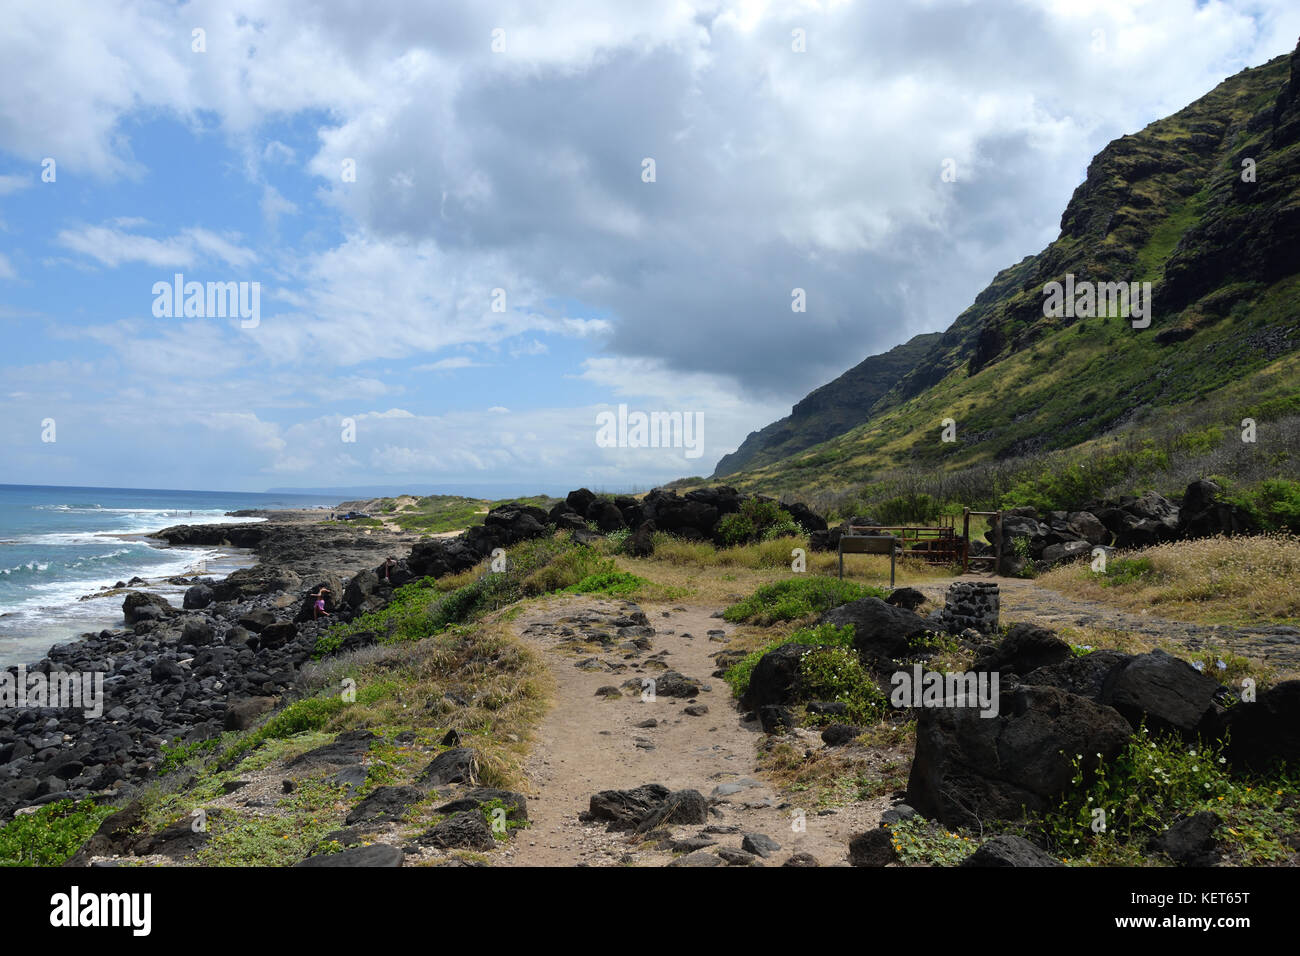 Hiking on Ka'ena Point Trail, Oahu Hawaii - Stock Image